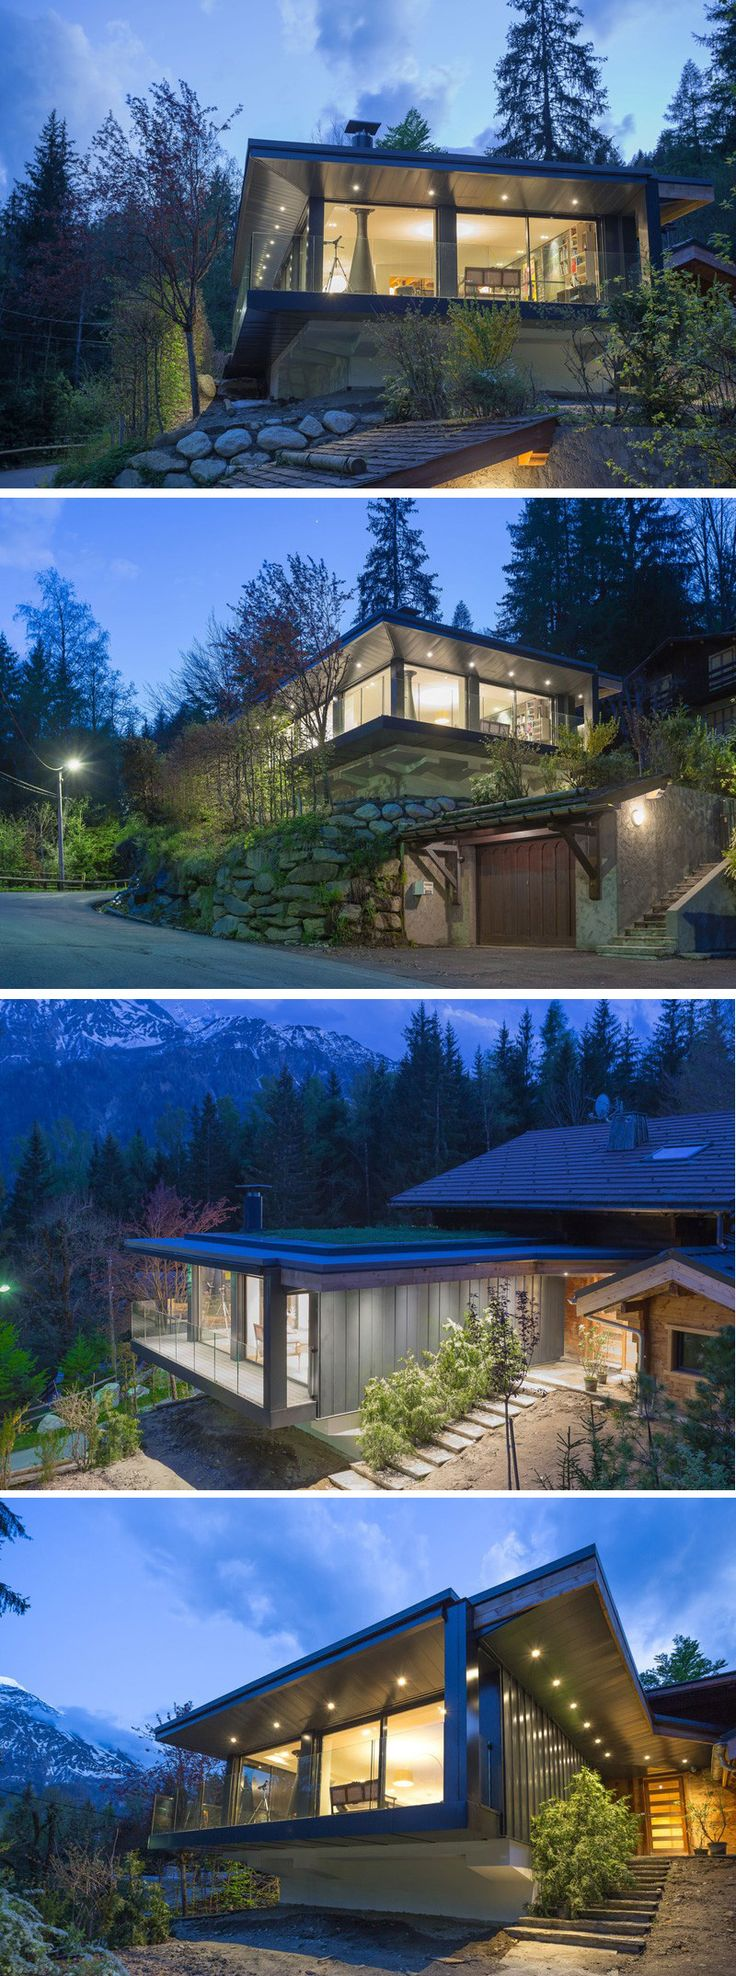 Chevallier Architectes have completed the renovation and addition to a chalet…